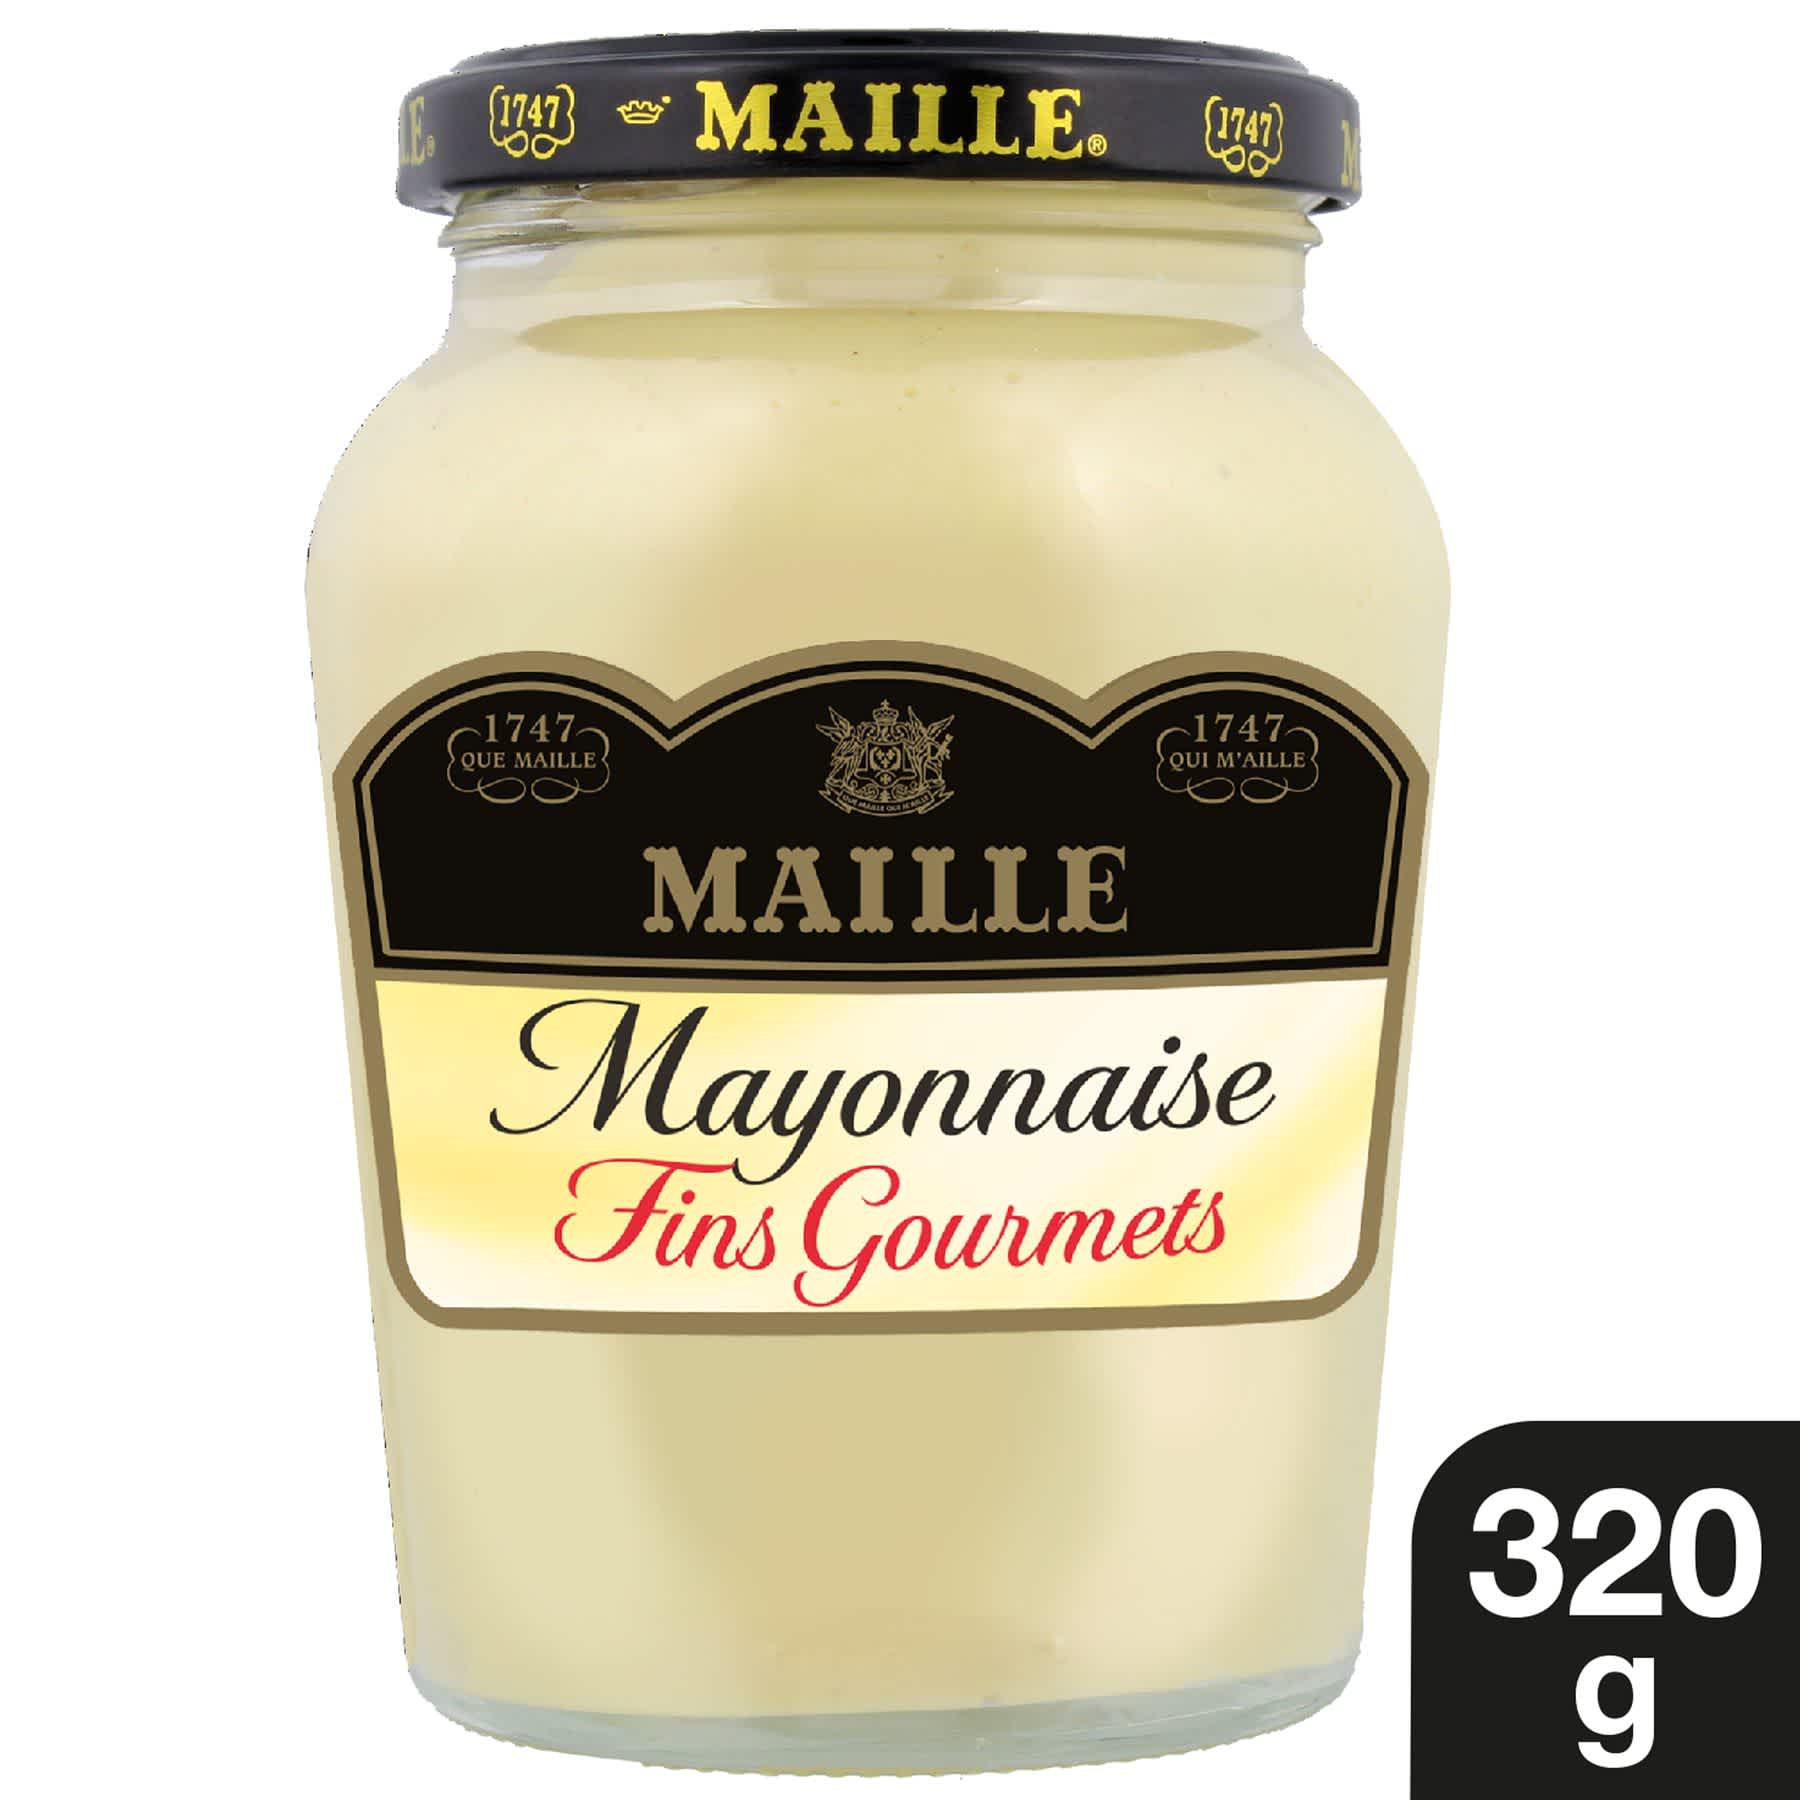 Maille - Mayonnaise Fins Gourmets Bocal 320 g